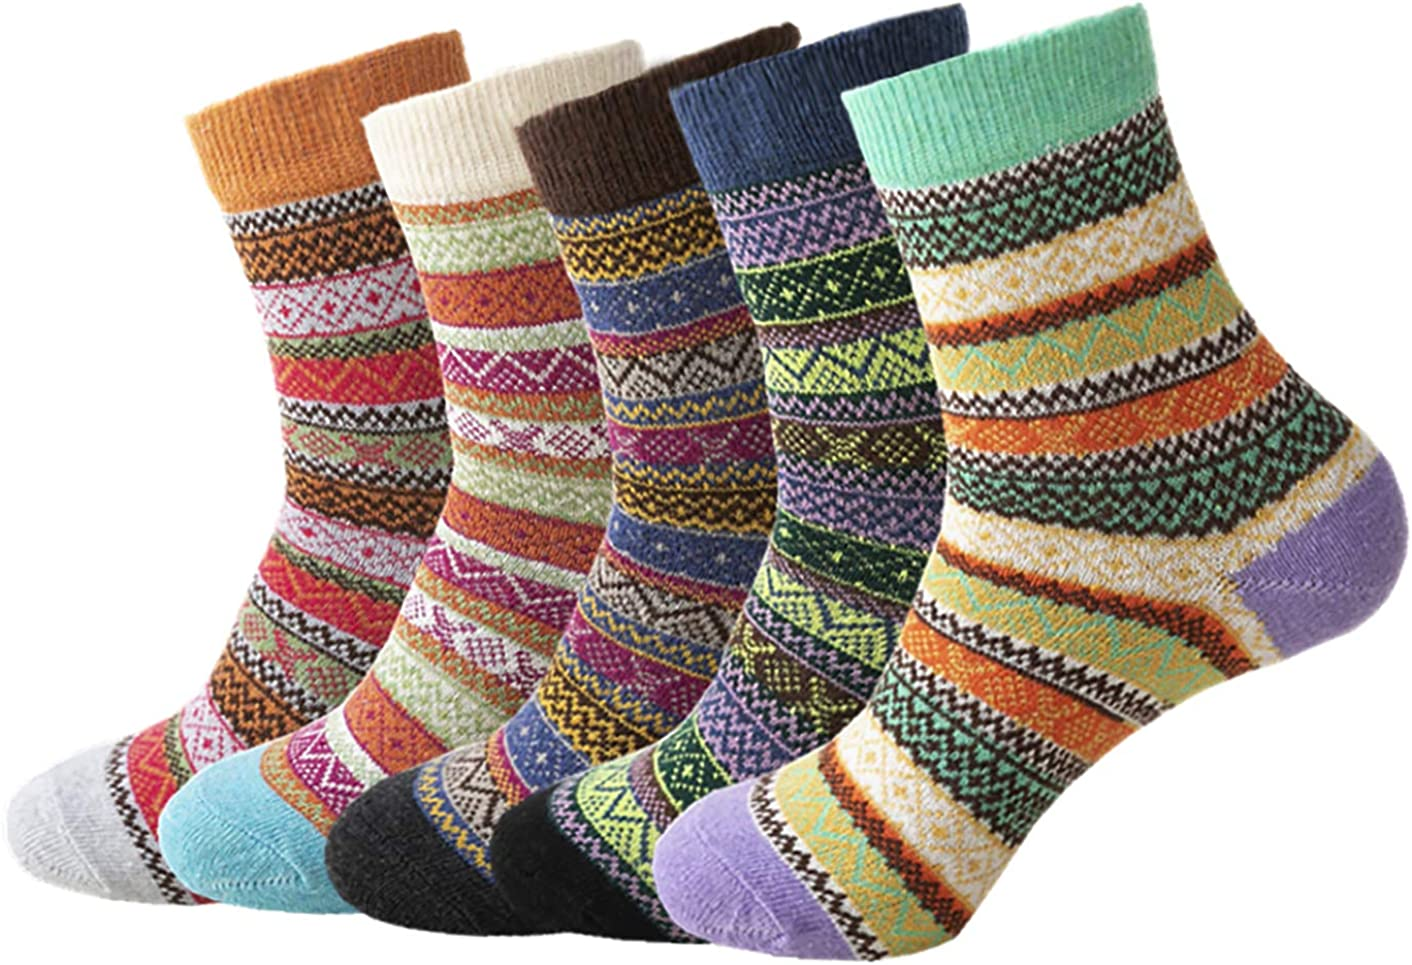 5 Pairs Women Cashmere Wool Thick Warm Soft Casual Multicolor Winter Socks NEW